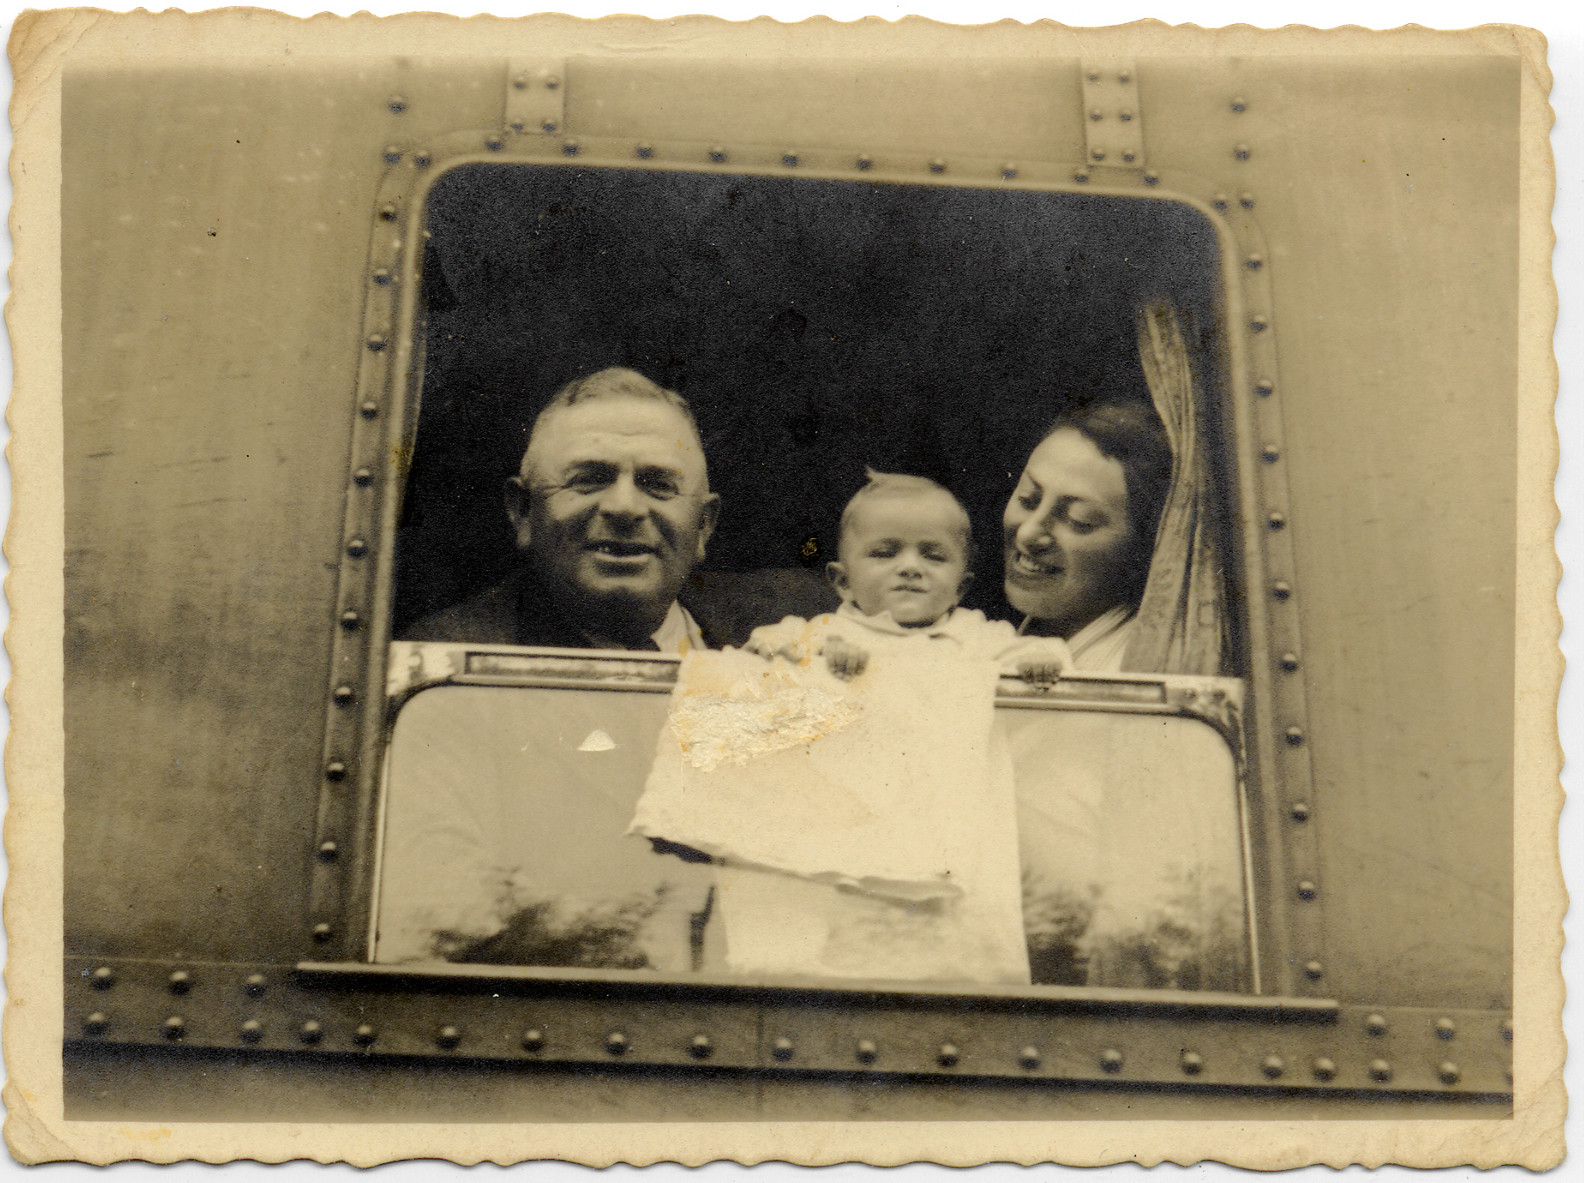 Pinchas Weissberg looks out a train window with his daughter, Natalia Schwarzwald, and her baby daughter, Elzbieta.